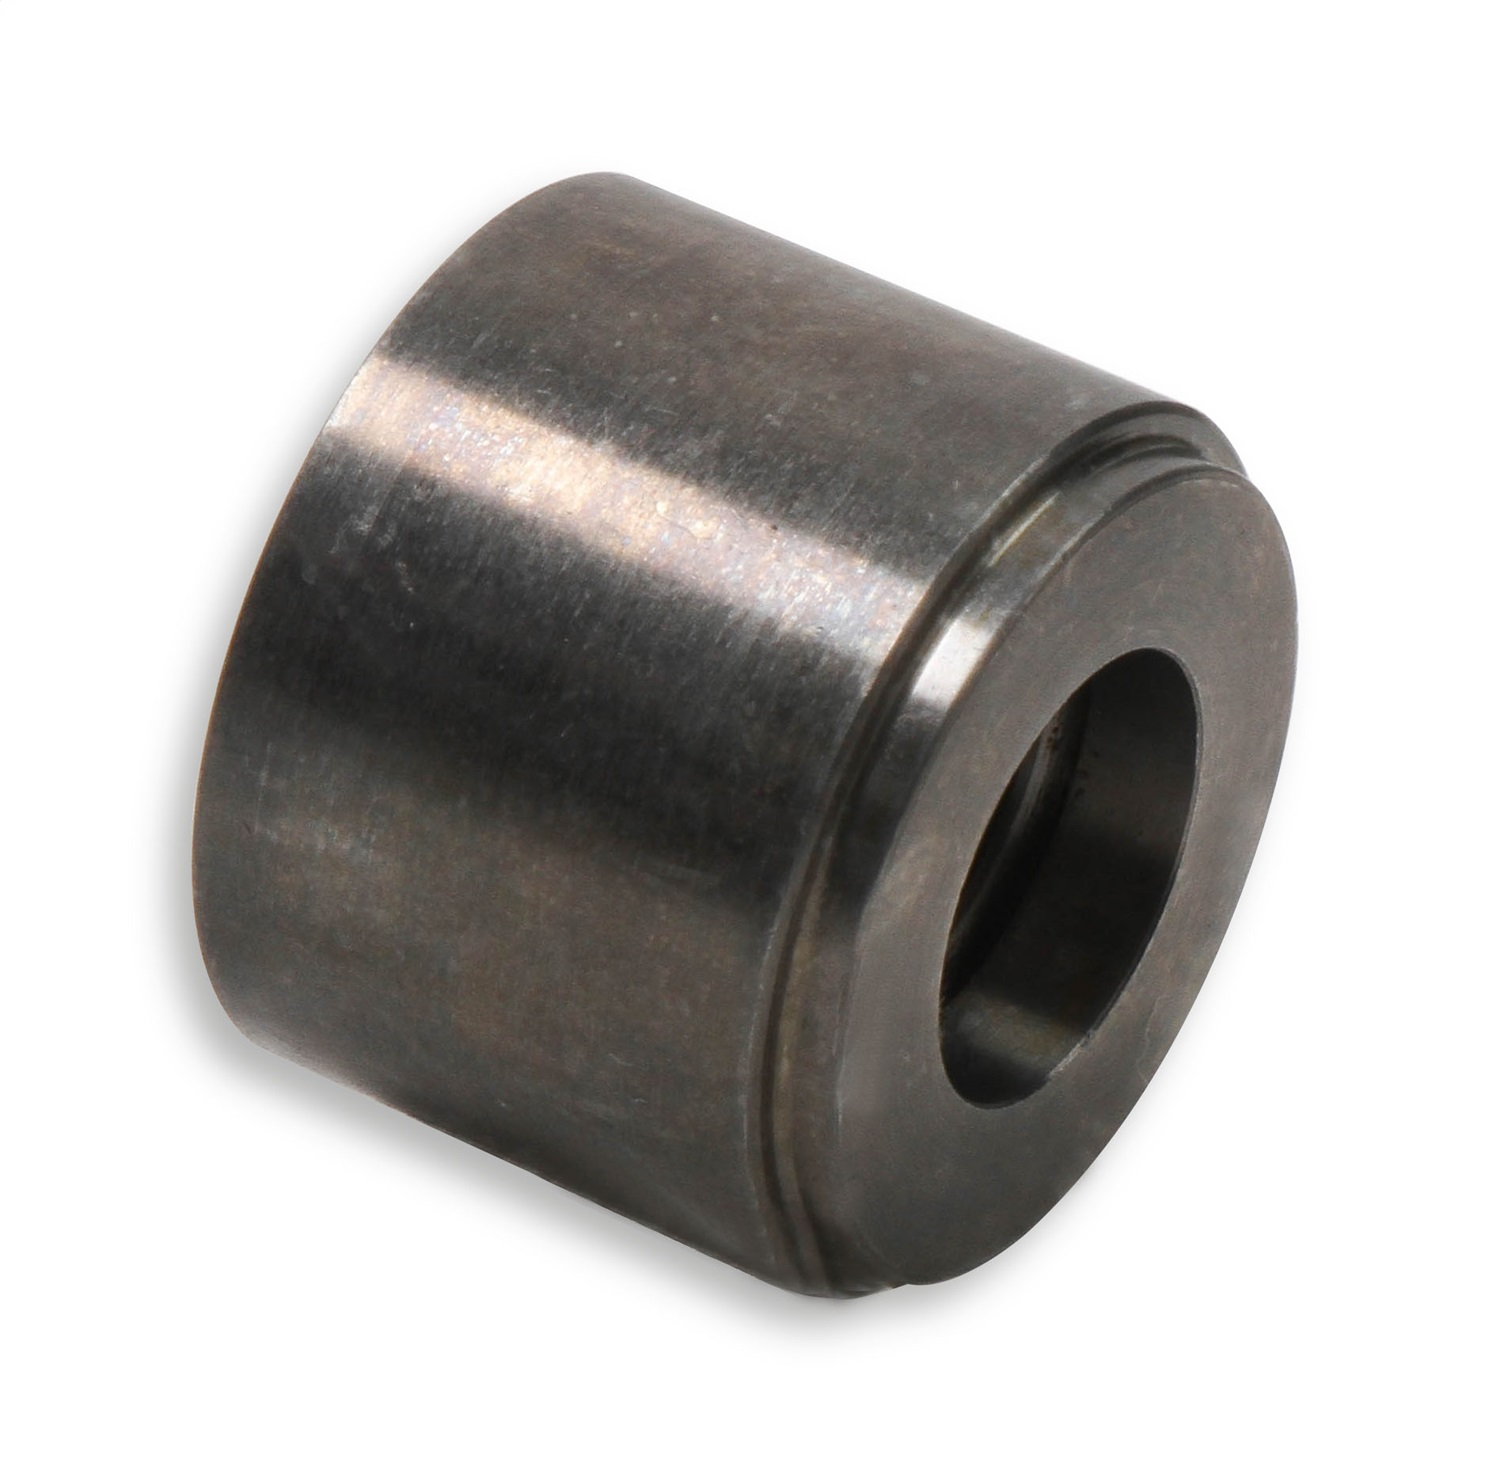 Earls Plumbing 996602ERL Steel NPT Weld Boss